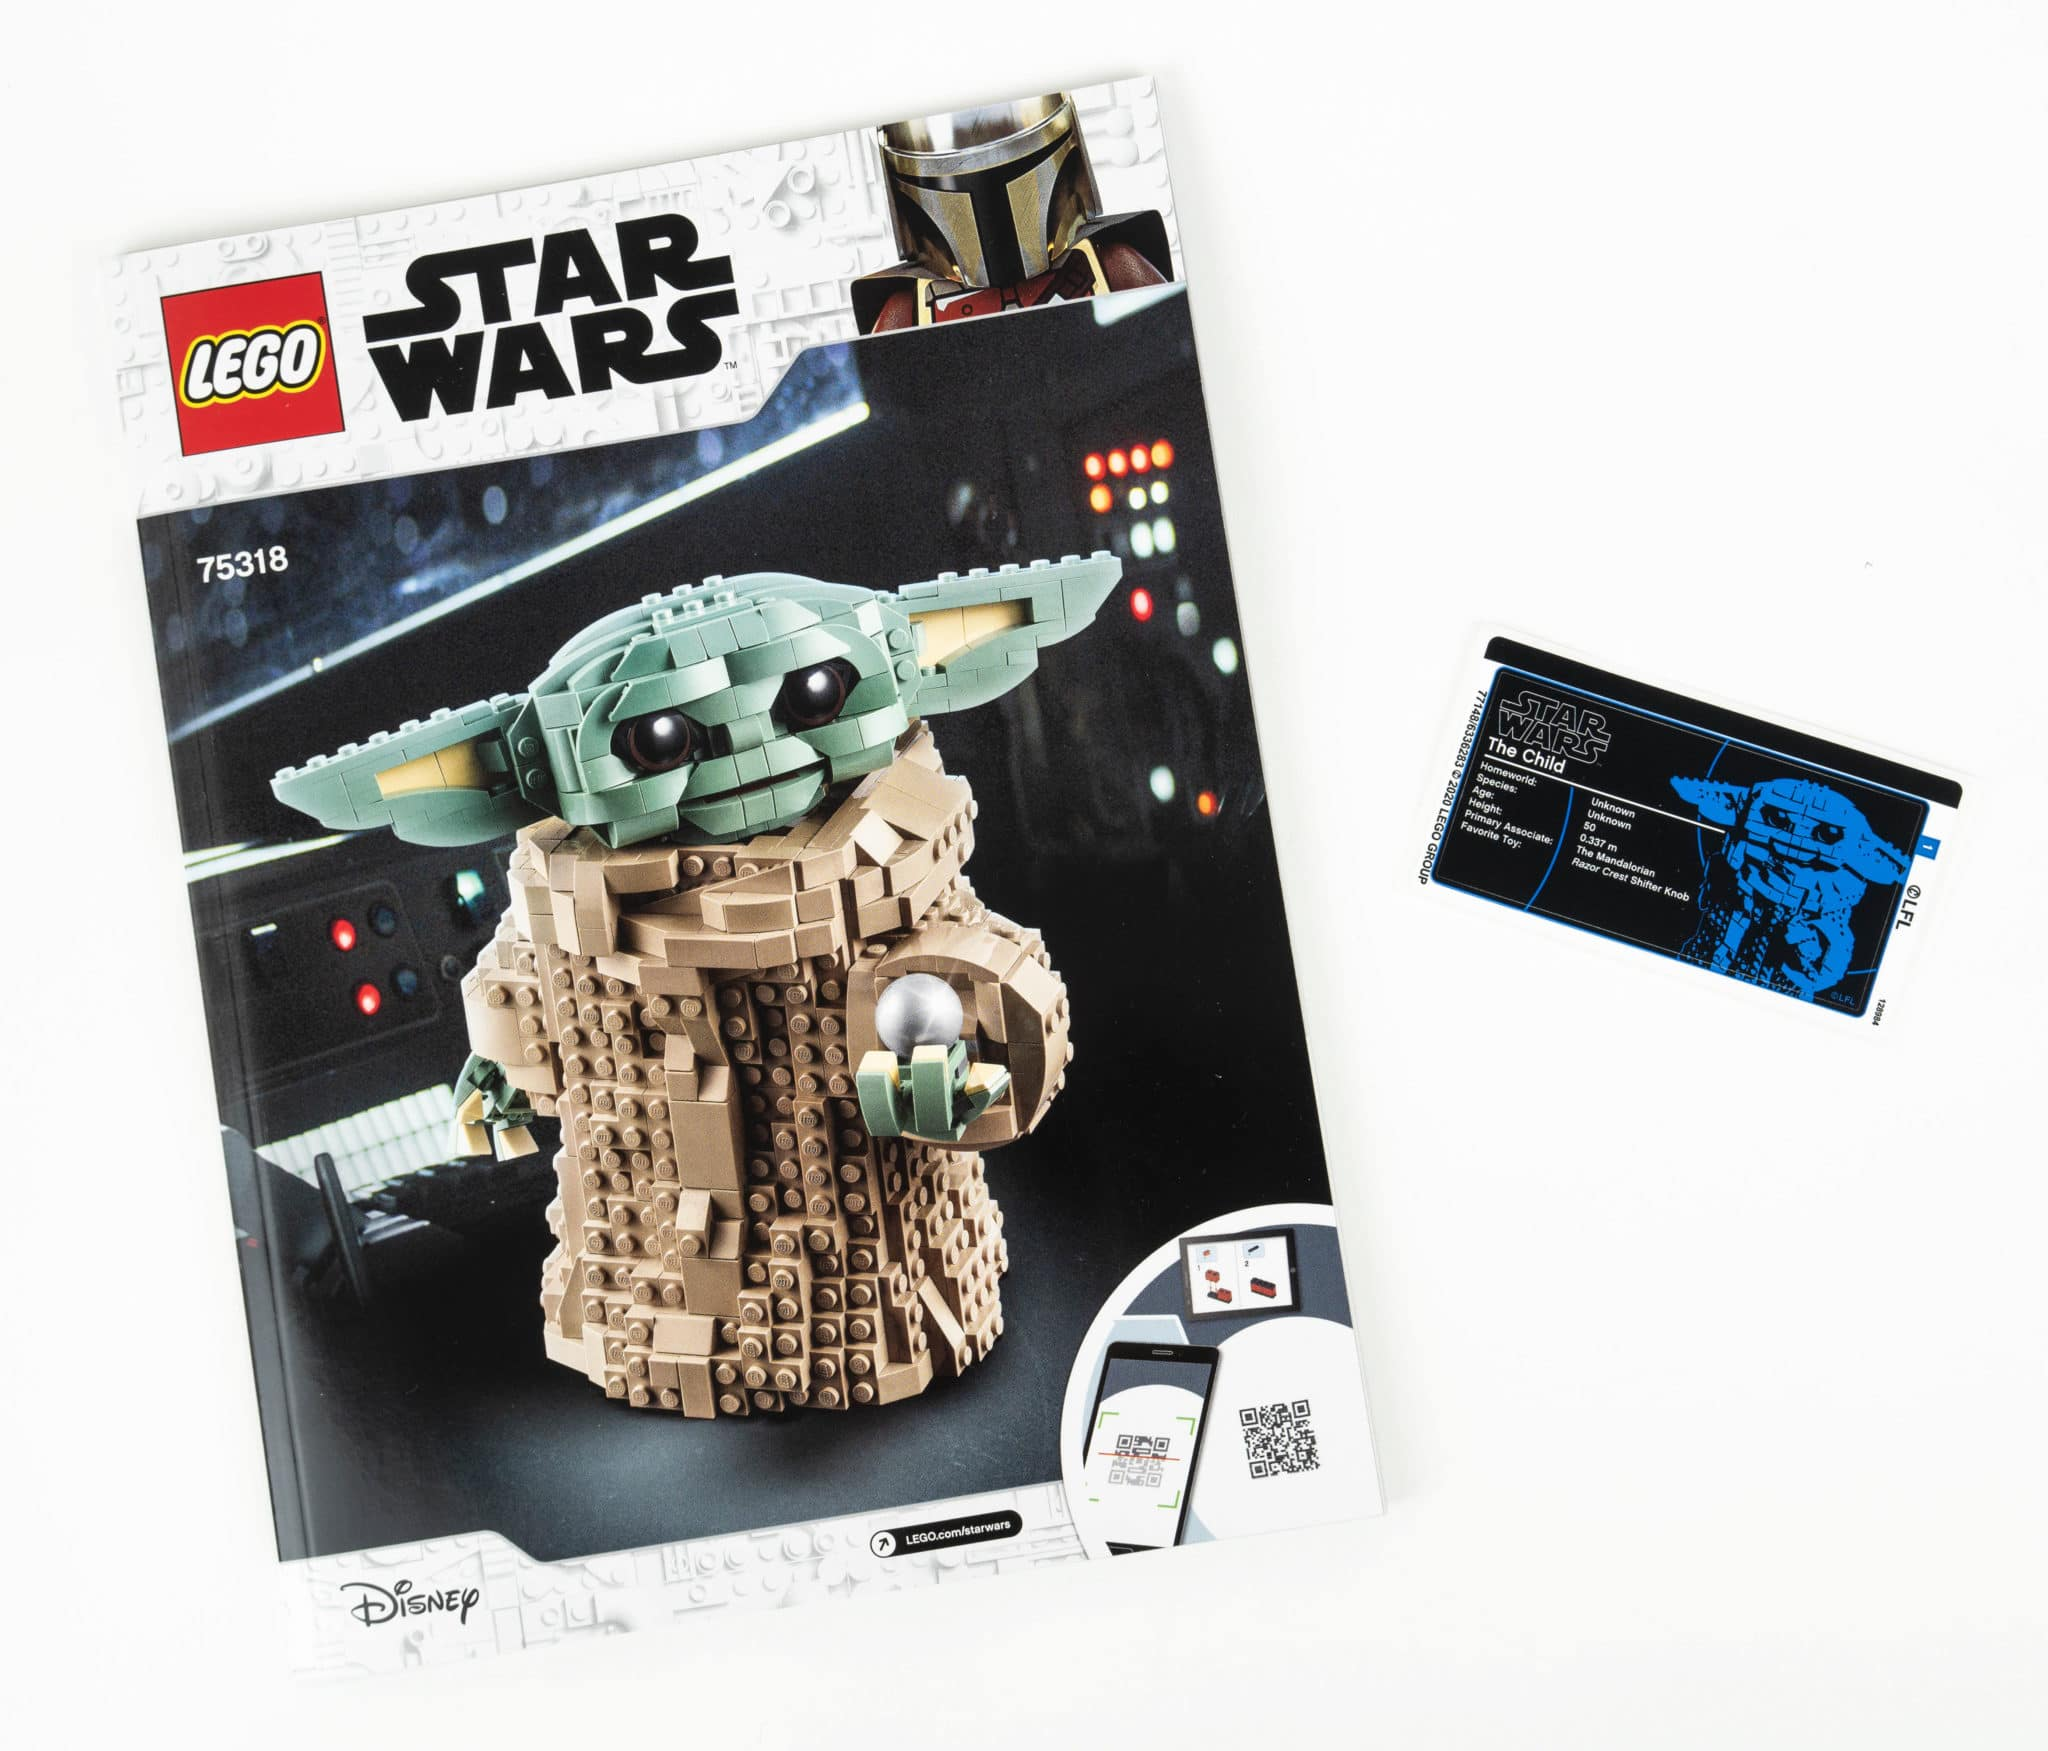 LEGO Star Wars 75318 The Child Anleitung